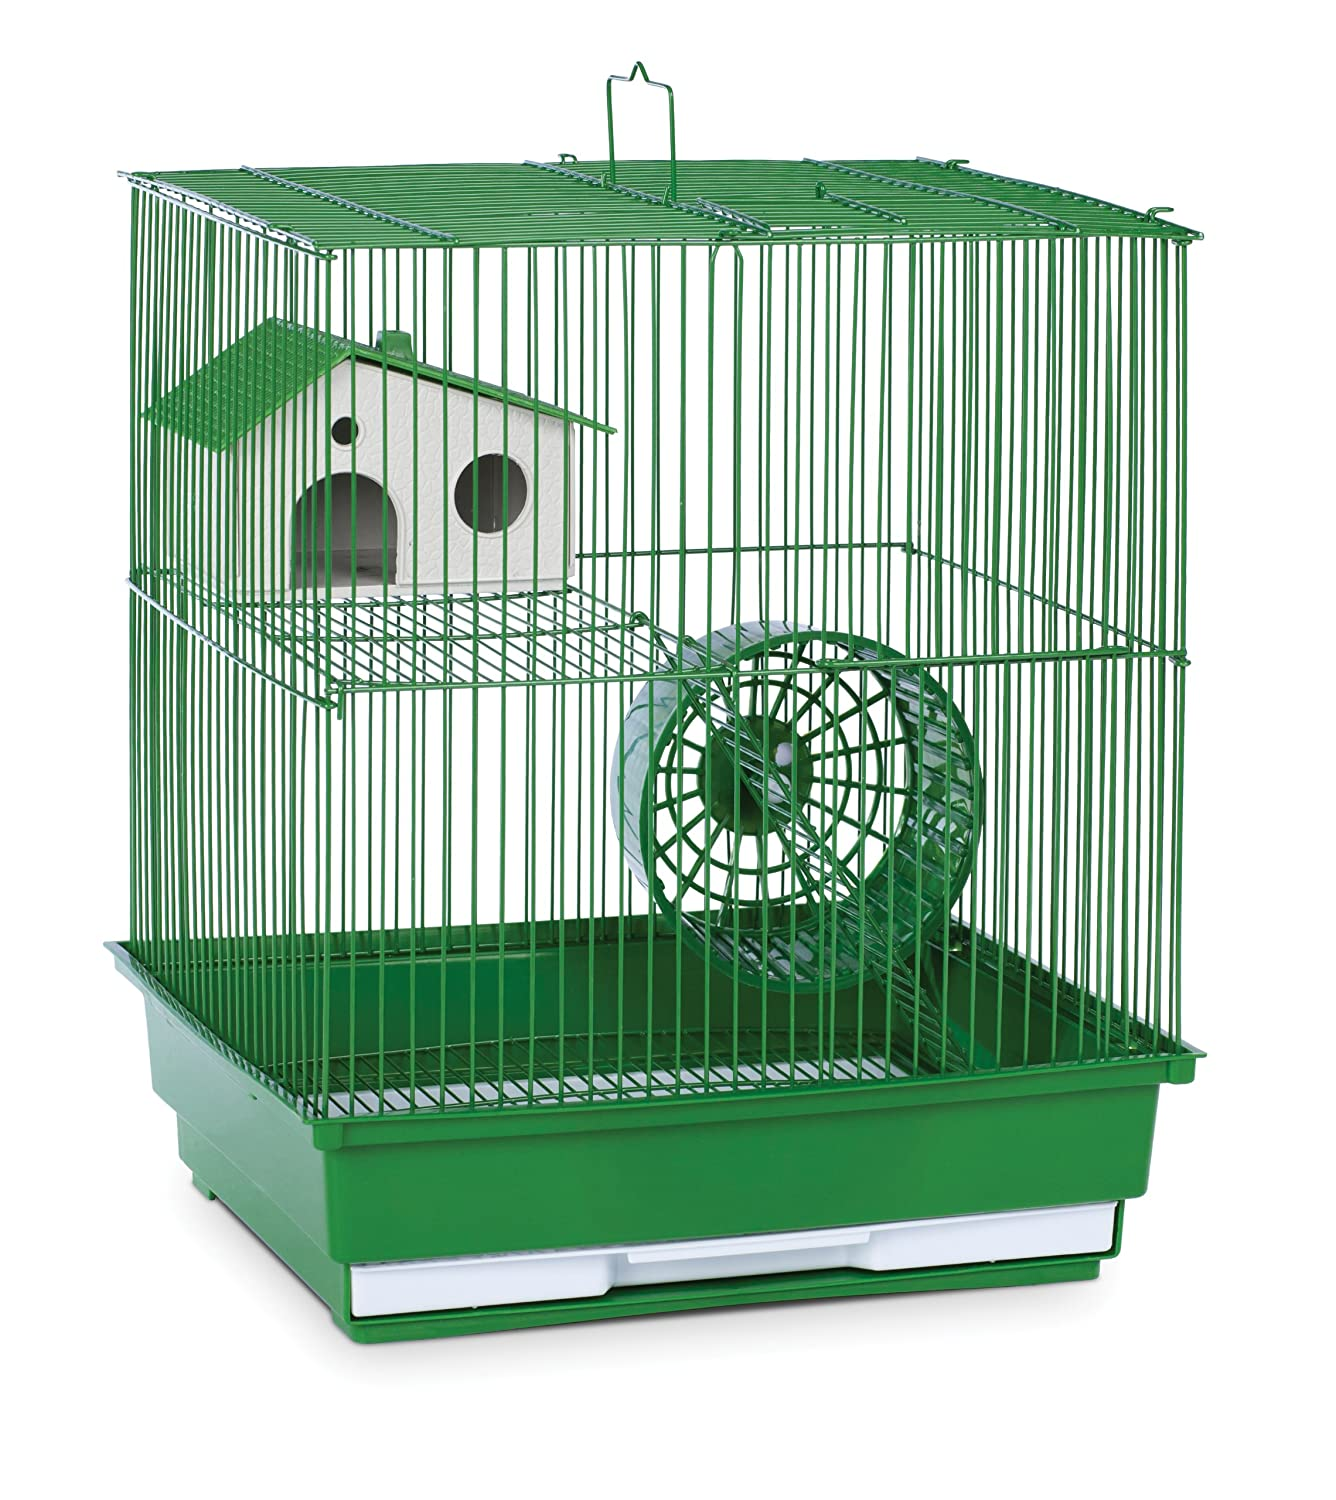 Green Prevue Hendryx Two Story Hamster and Gerbil Cage, Red